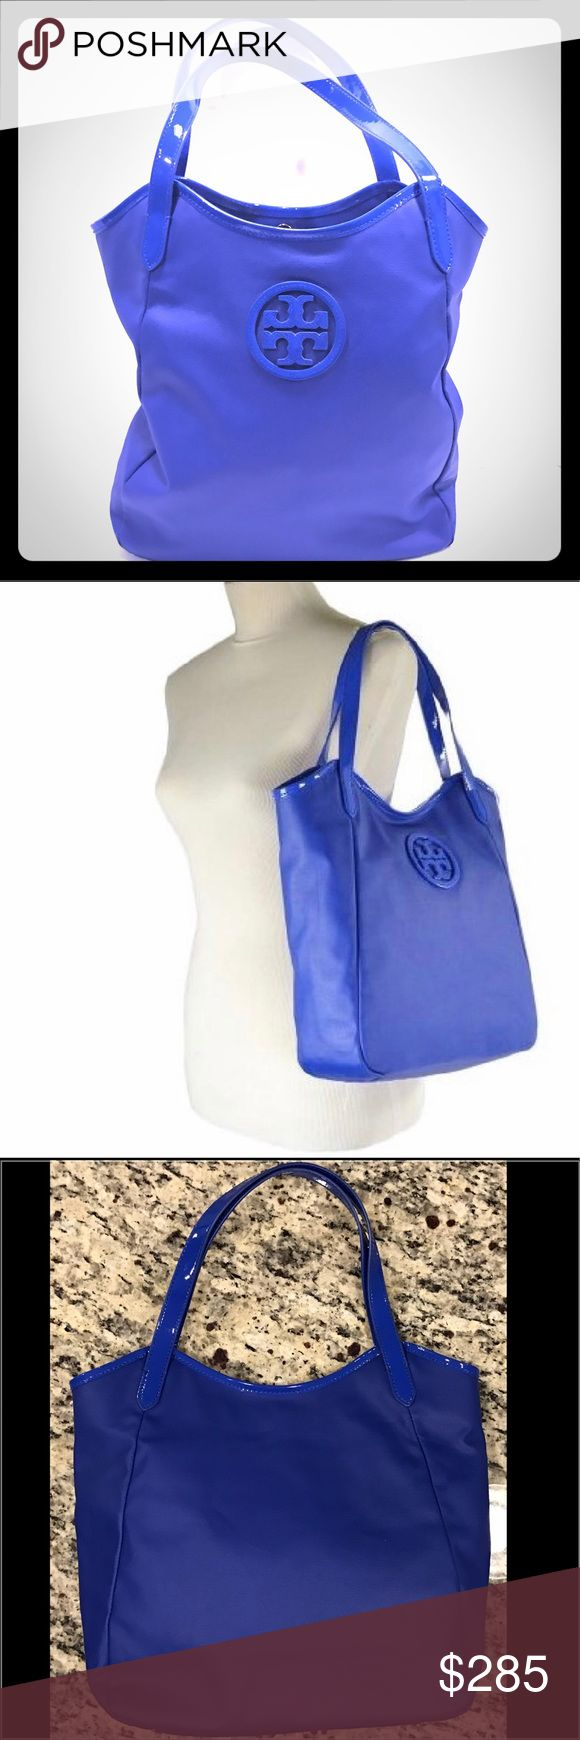 "Tory Burch Tote Tory Burch Dipped Canvas Stacked Logo Tote in blue.  Coated canvas with patent leather trim.  Approx 12"" x 13"" x 5"". Double straps with 7.5"" strap drop.  Magnetic snap closure.  Interior zip pocket and 2 slip pockets.  Fabric lining, gold tone hardware. Large TB logo on front, gold TB logo inside. Emblem inside still has protective film over it.  Perfect condition.   Absolutely no signs of wear. Tory Burch Bags Totes"